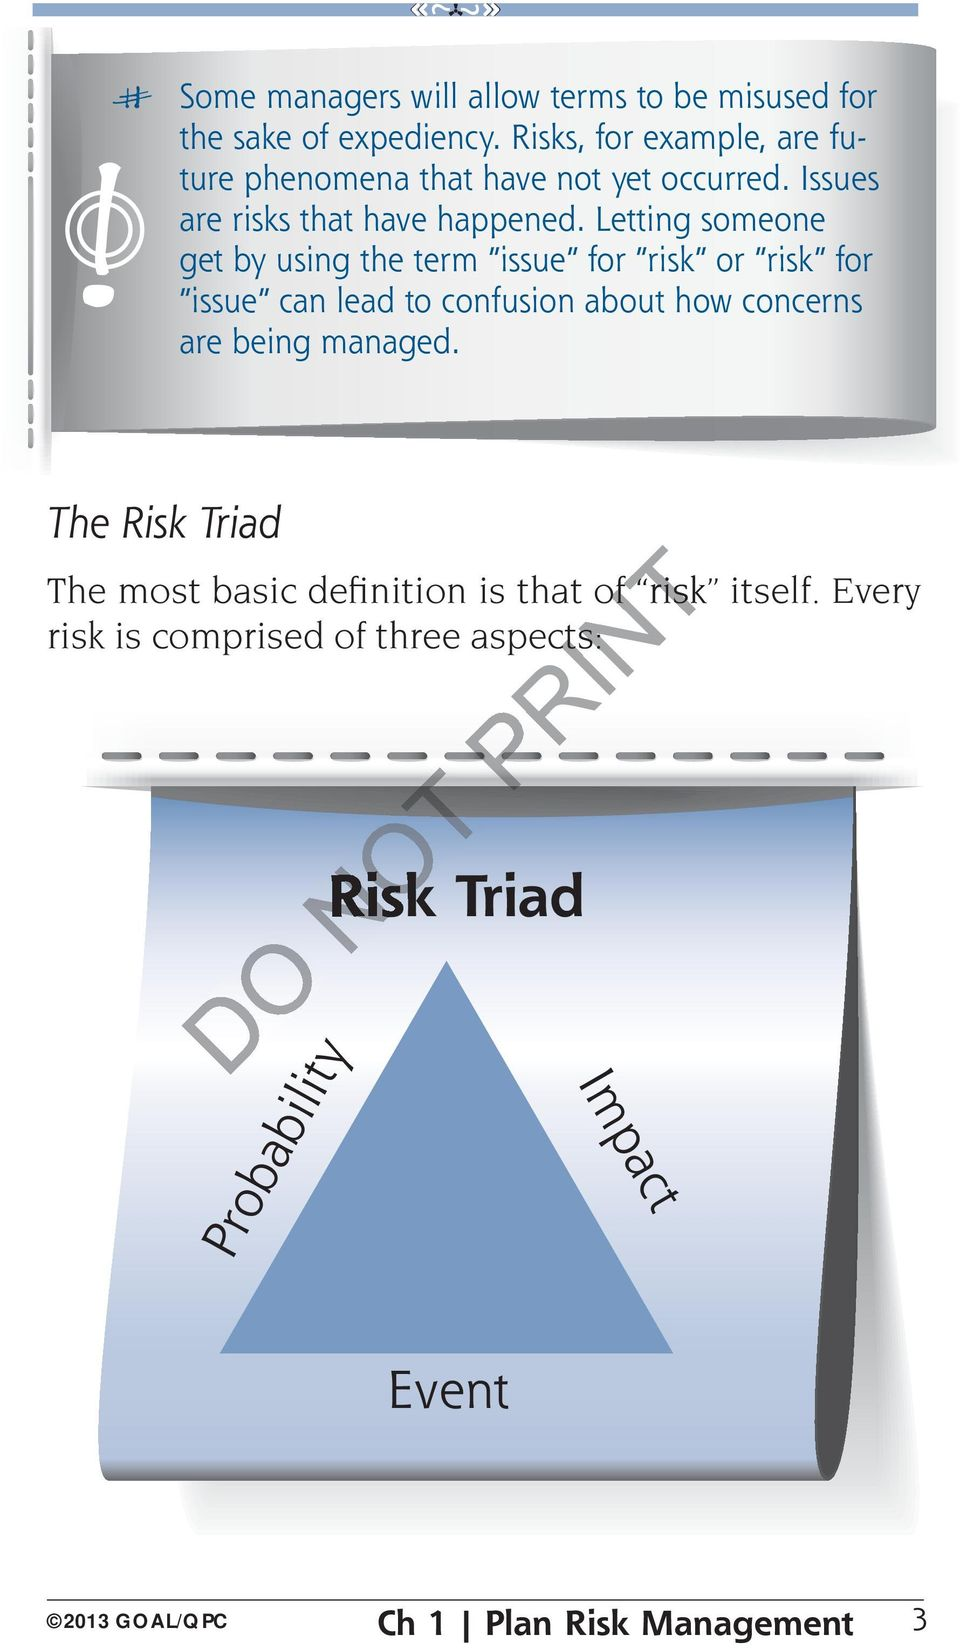 Letting someone get by using the term issue for risk or risk for issue can lead to confusion about how concerns are being